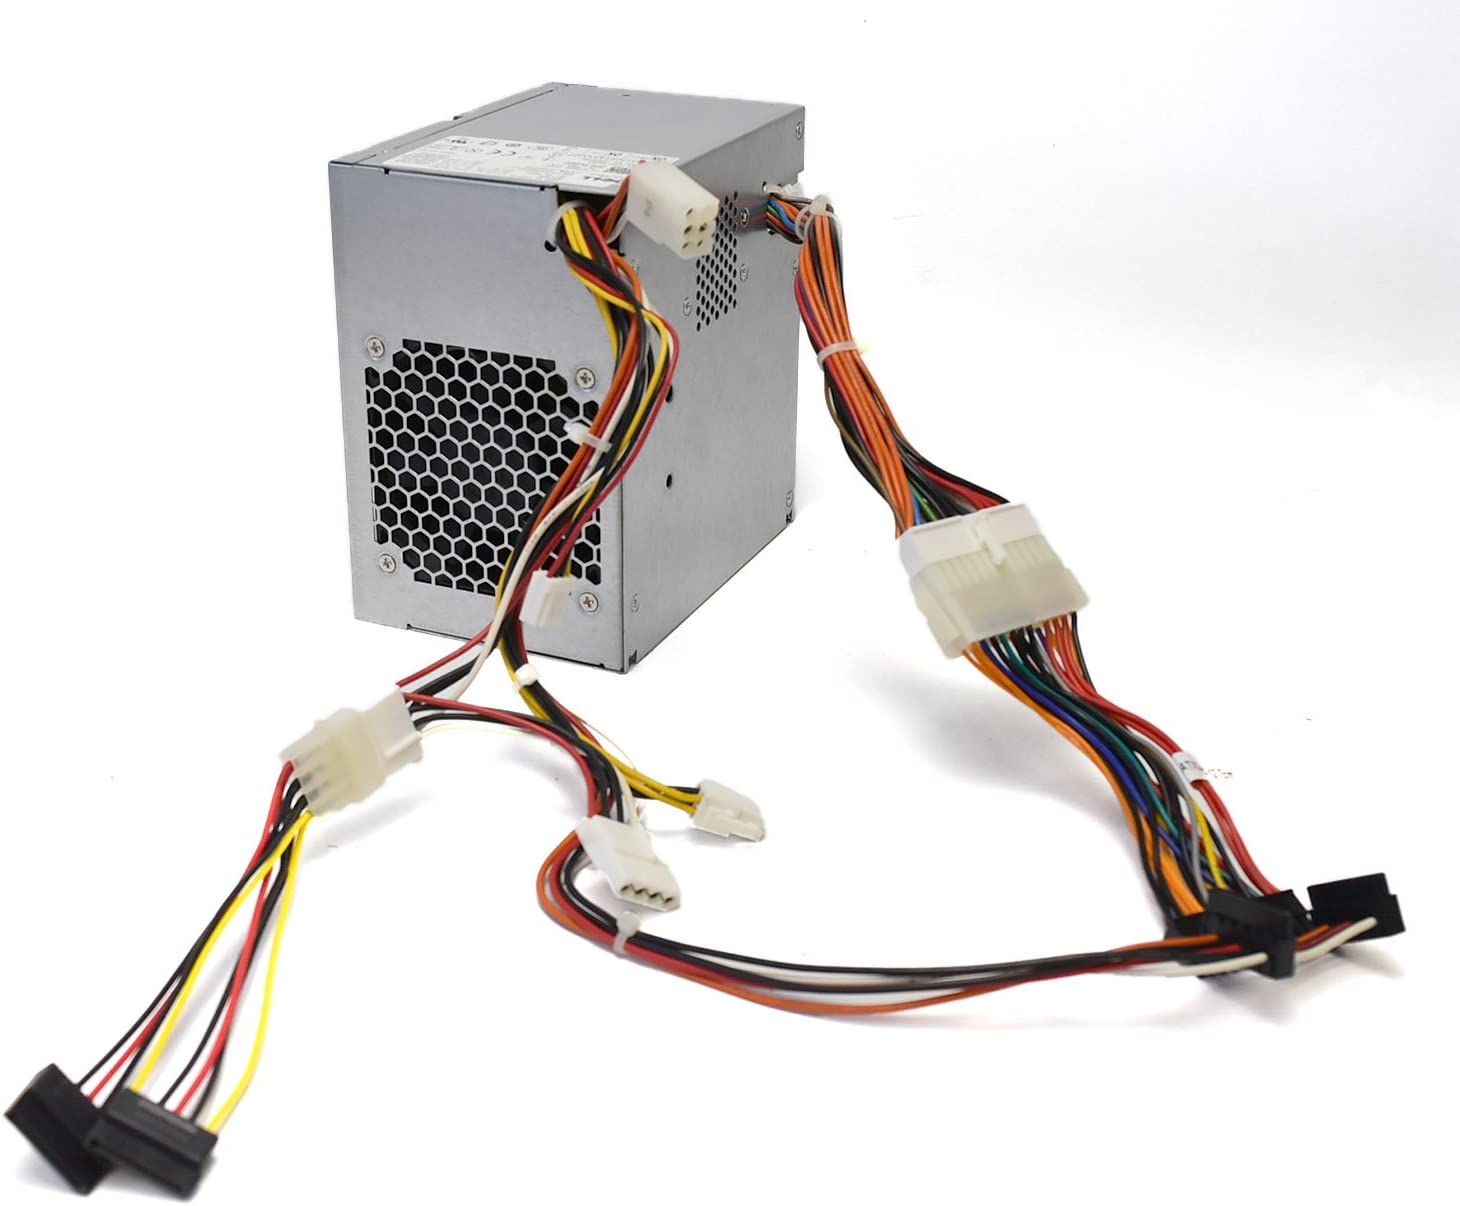 Genuine Dell 305w Power Supply PSU for Optiplex 980 Model Numbers: F305P-00 L305P-00 H305P-02 Compatible Part Numbers: K346R K345R M117R